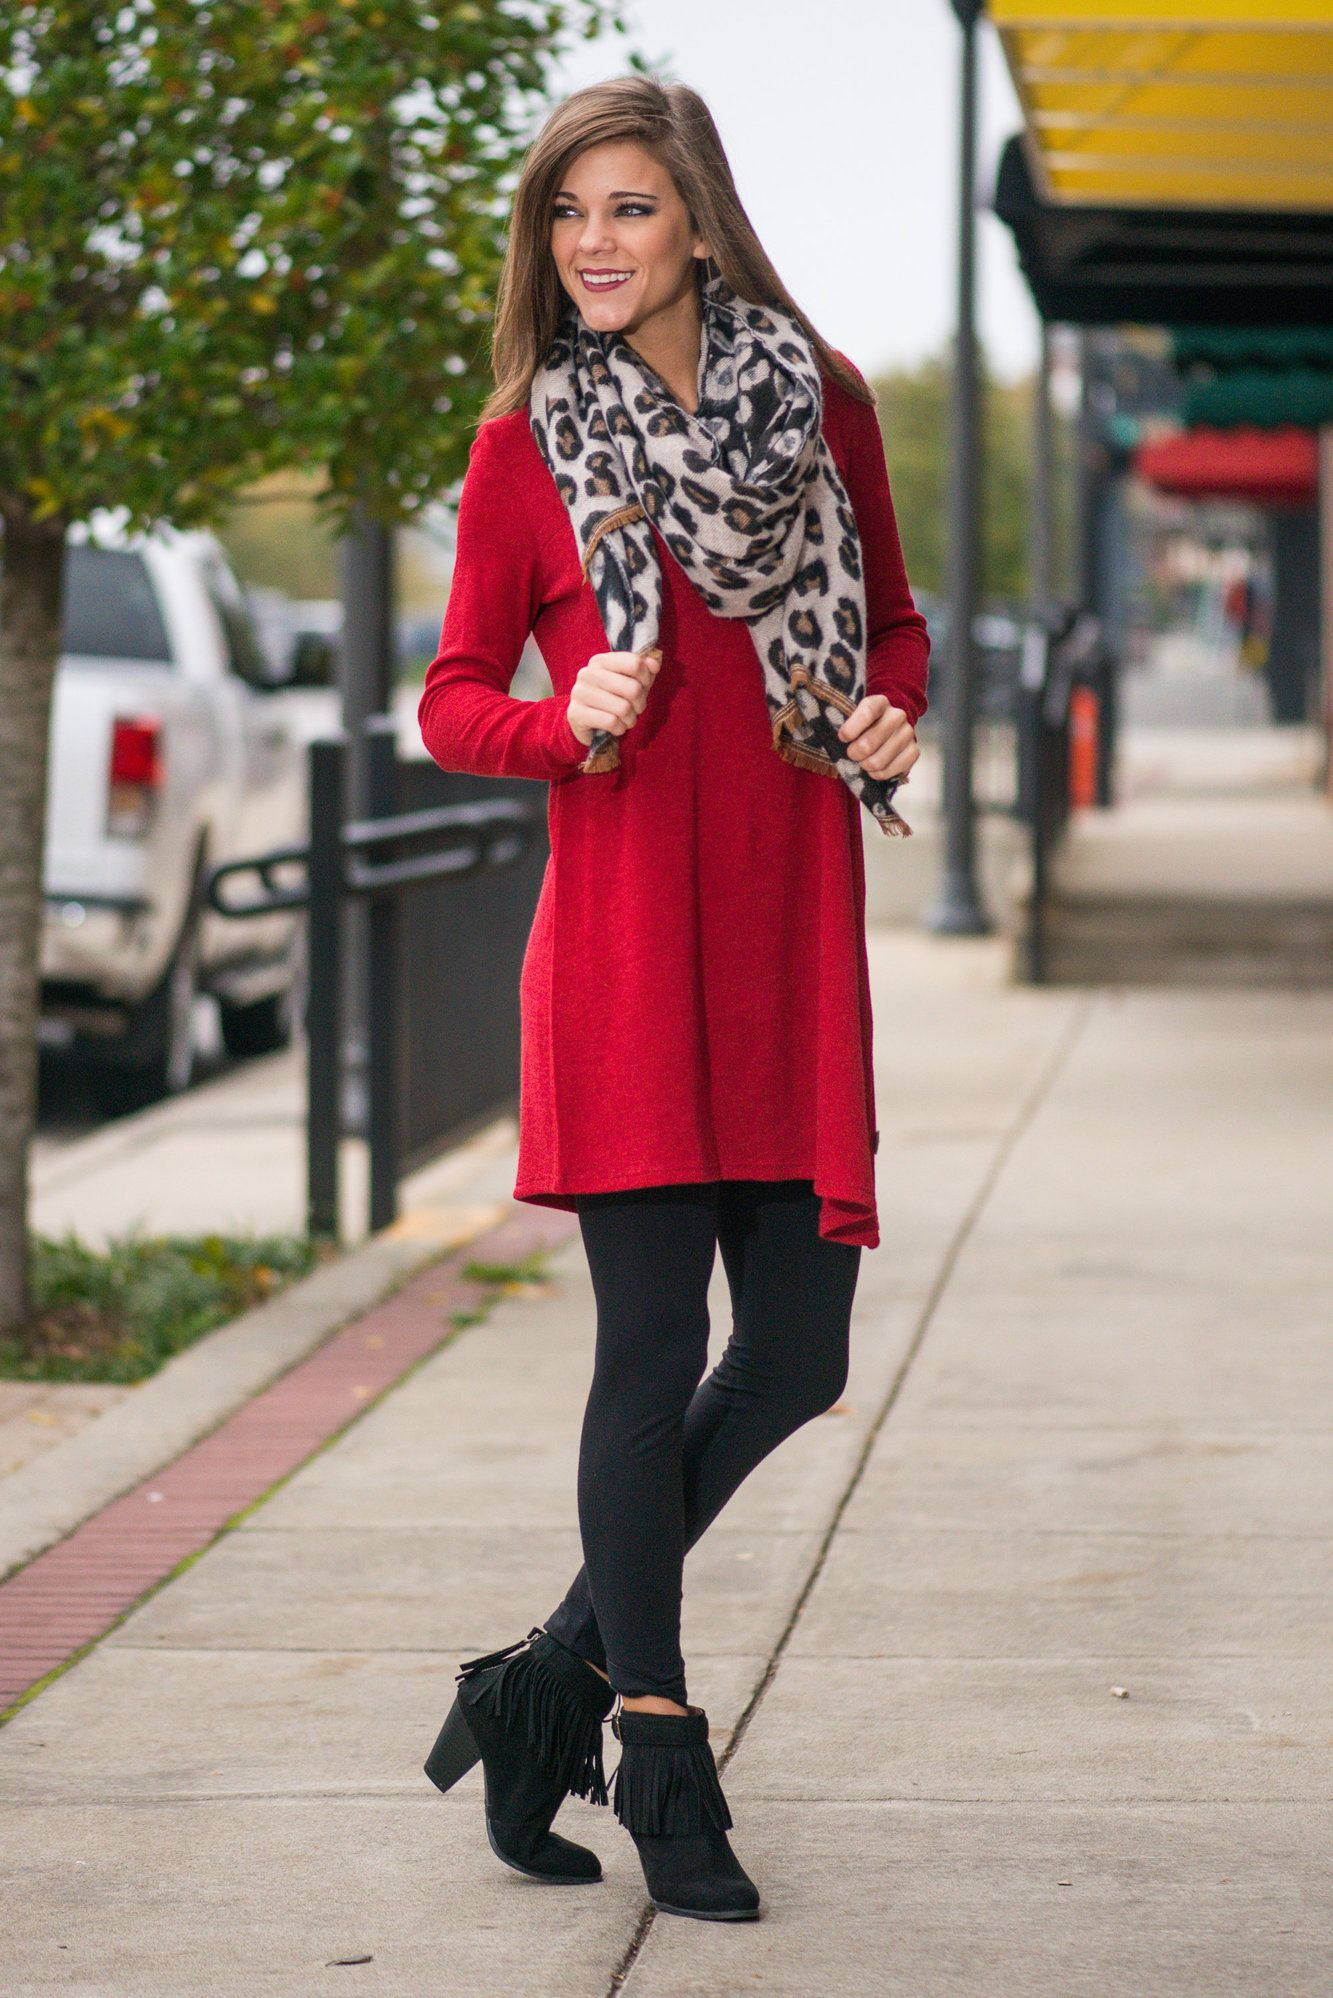 73aeee19c27 outfits with kaftans and leggings - Yahoo Search Results. Red tunic with  leggings